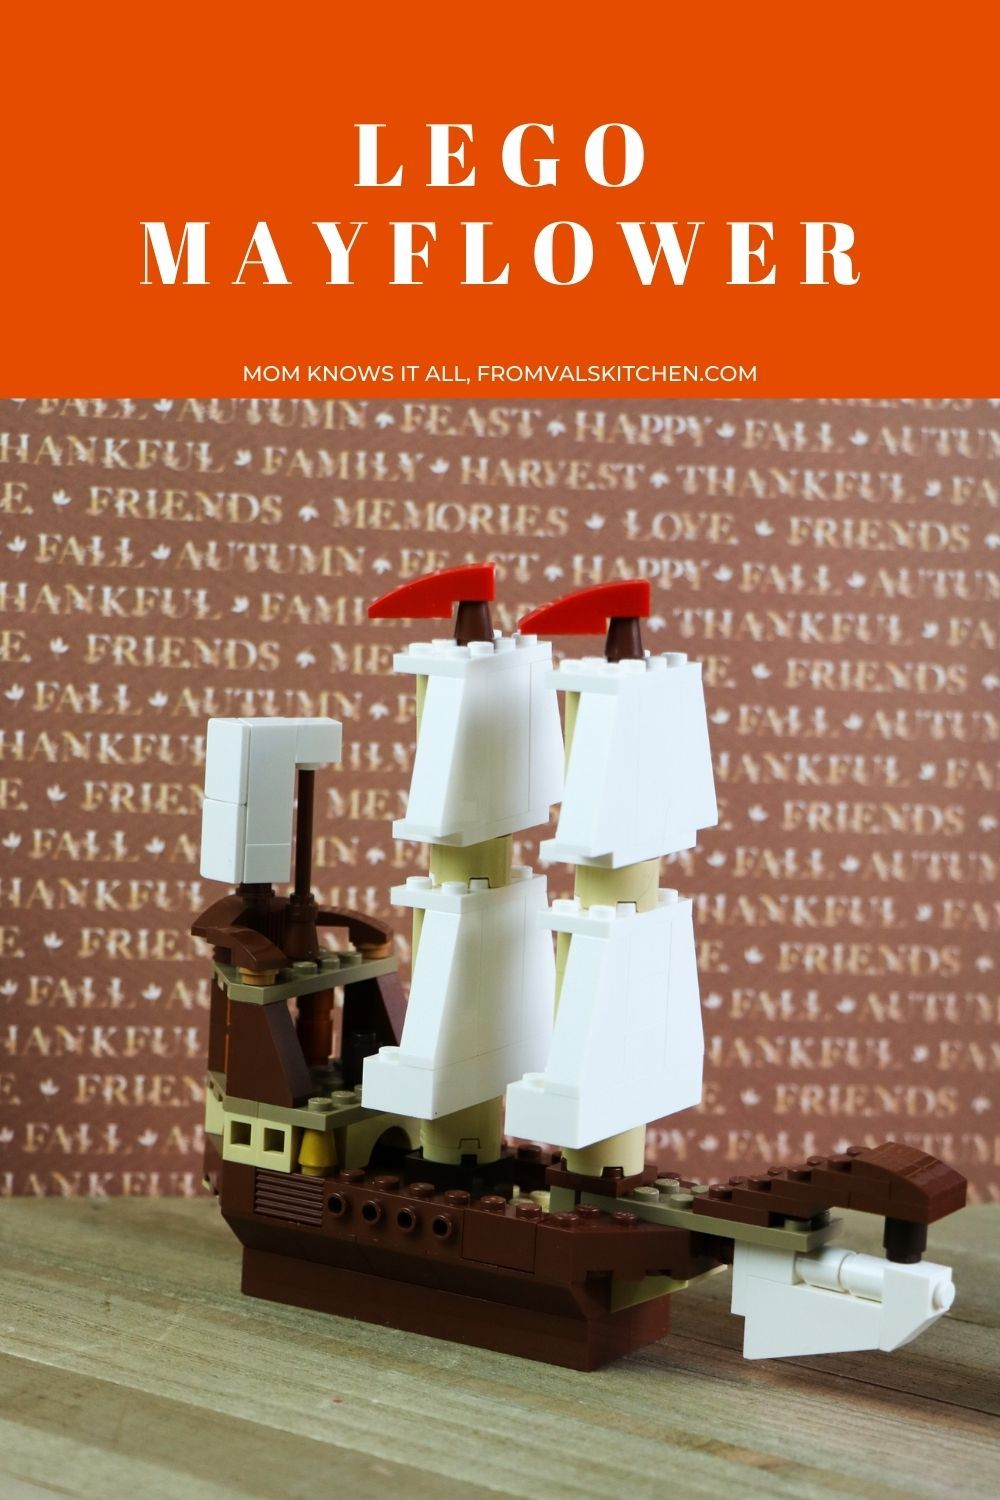 How To Make A LEGO Mayflower - Mom Knows It All